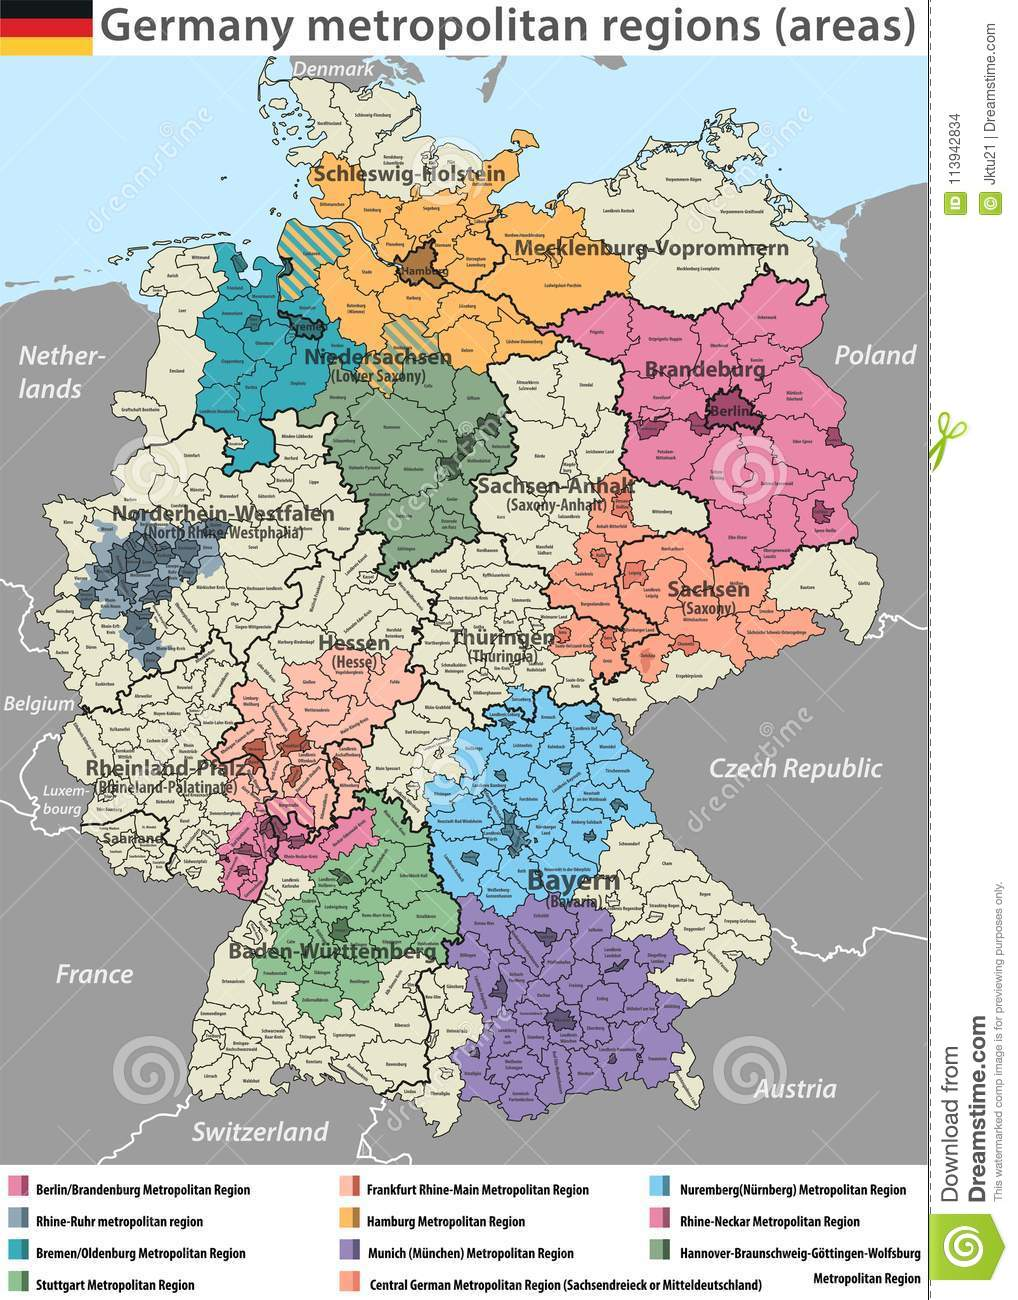 Maps Oldenburg Vector High Detailed Map Of Germany Metropolitan Regions Areas Stock